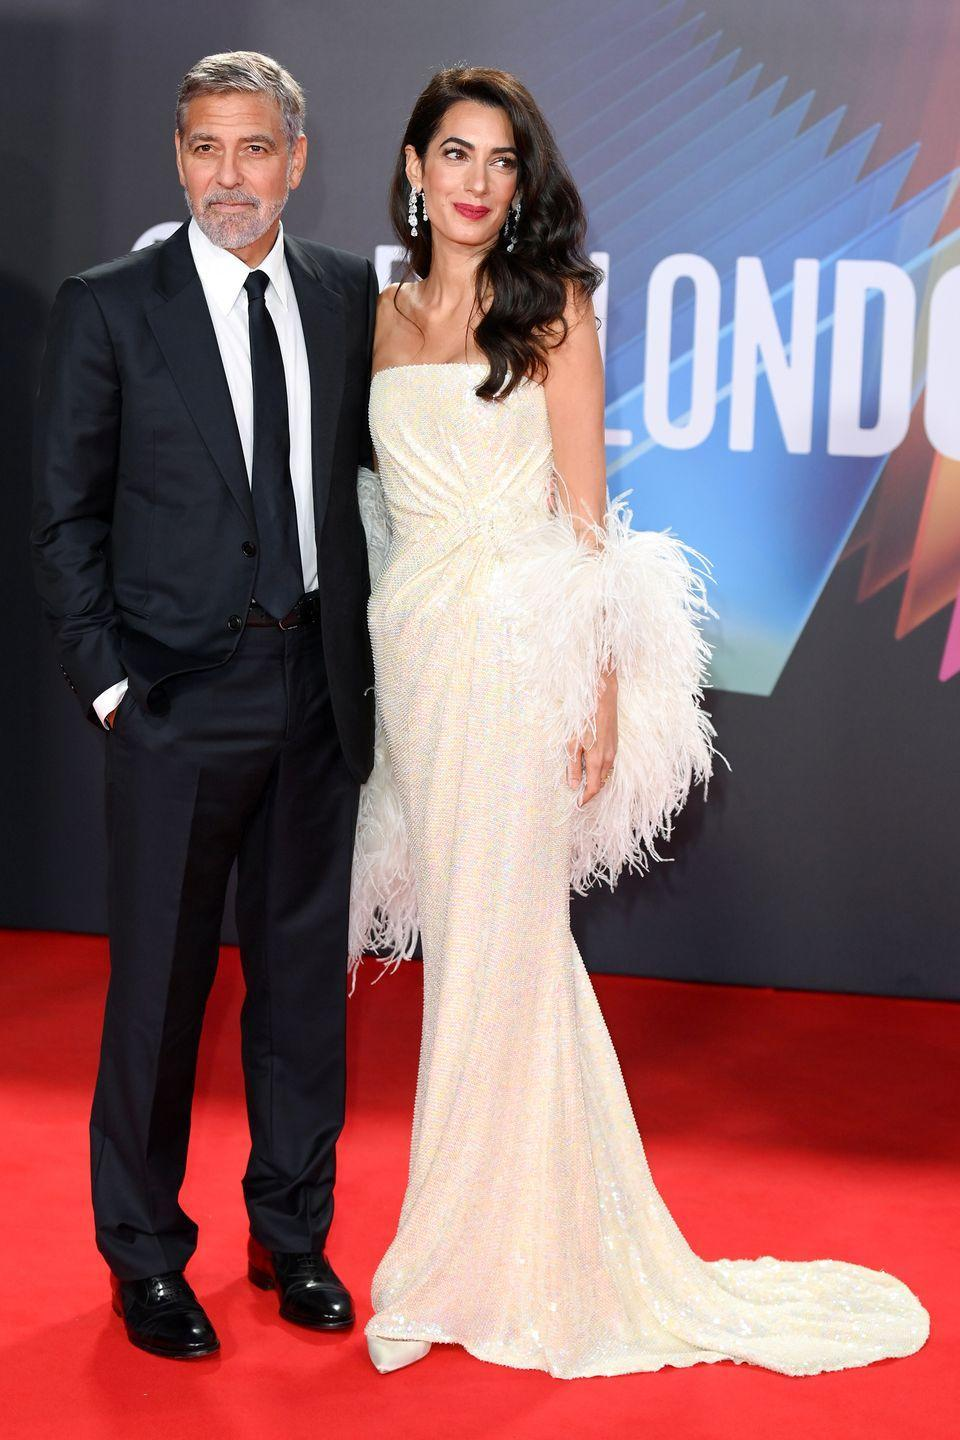 <p><strong>10 October</strong></p><p> George Clooney and Amal Clooney, in custom 16Arlington, walked the red carpet for The Tender Bar premiere.<br></p>